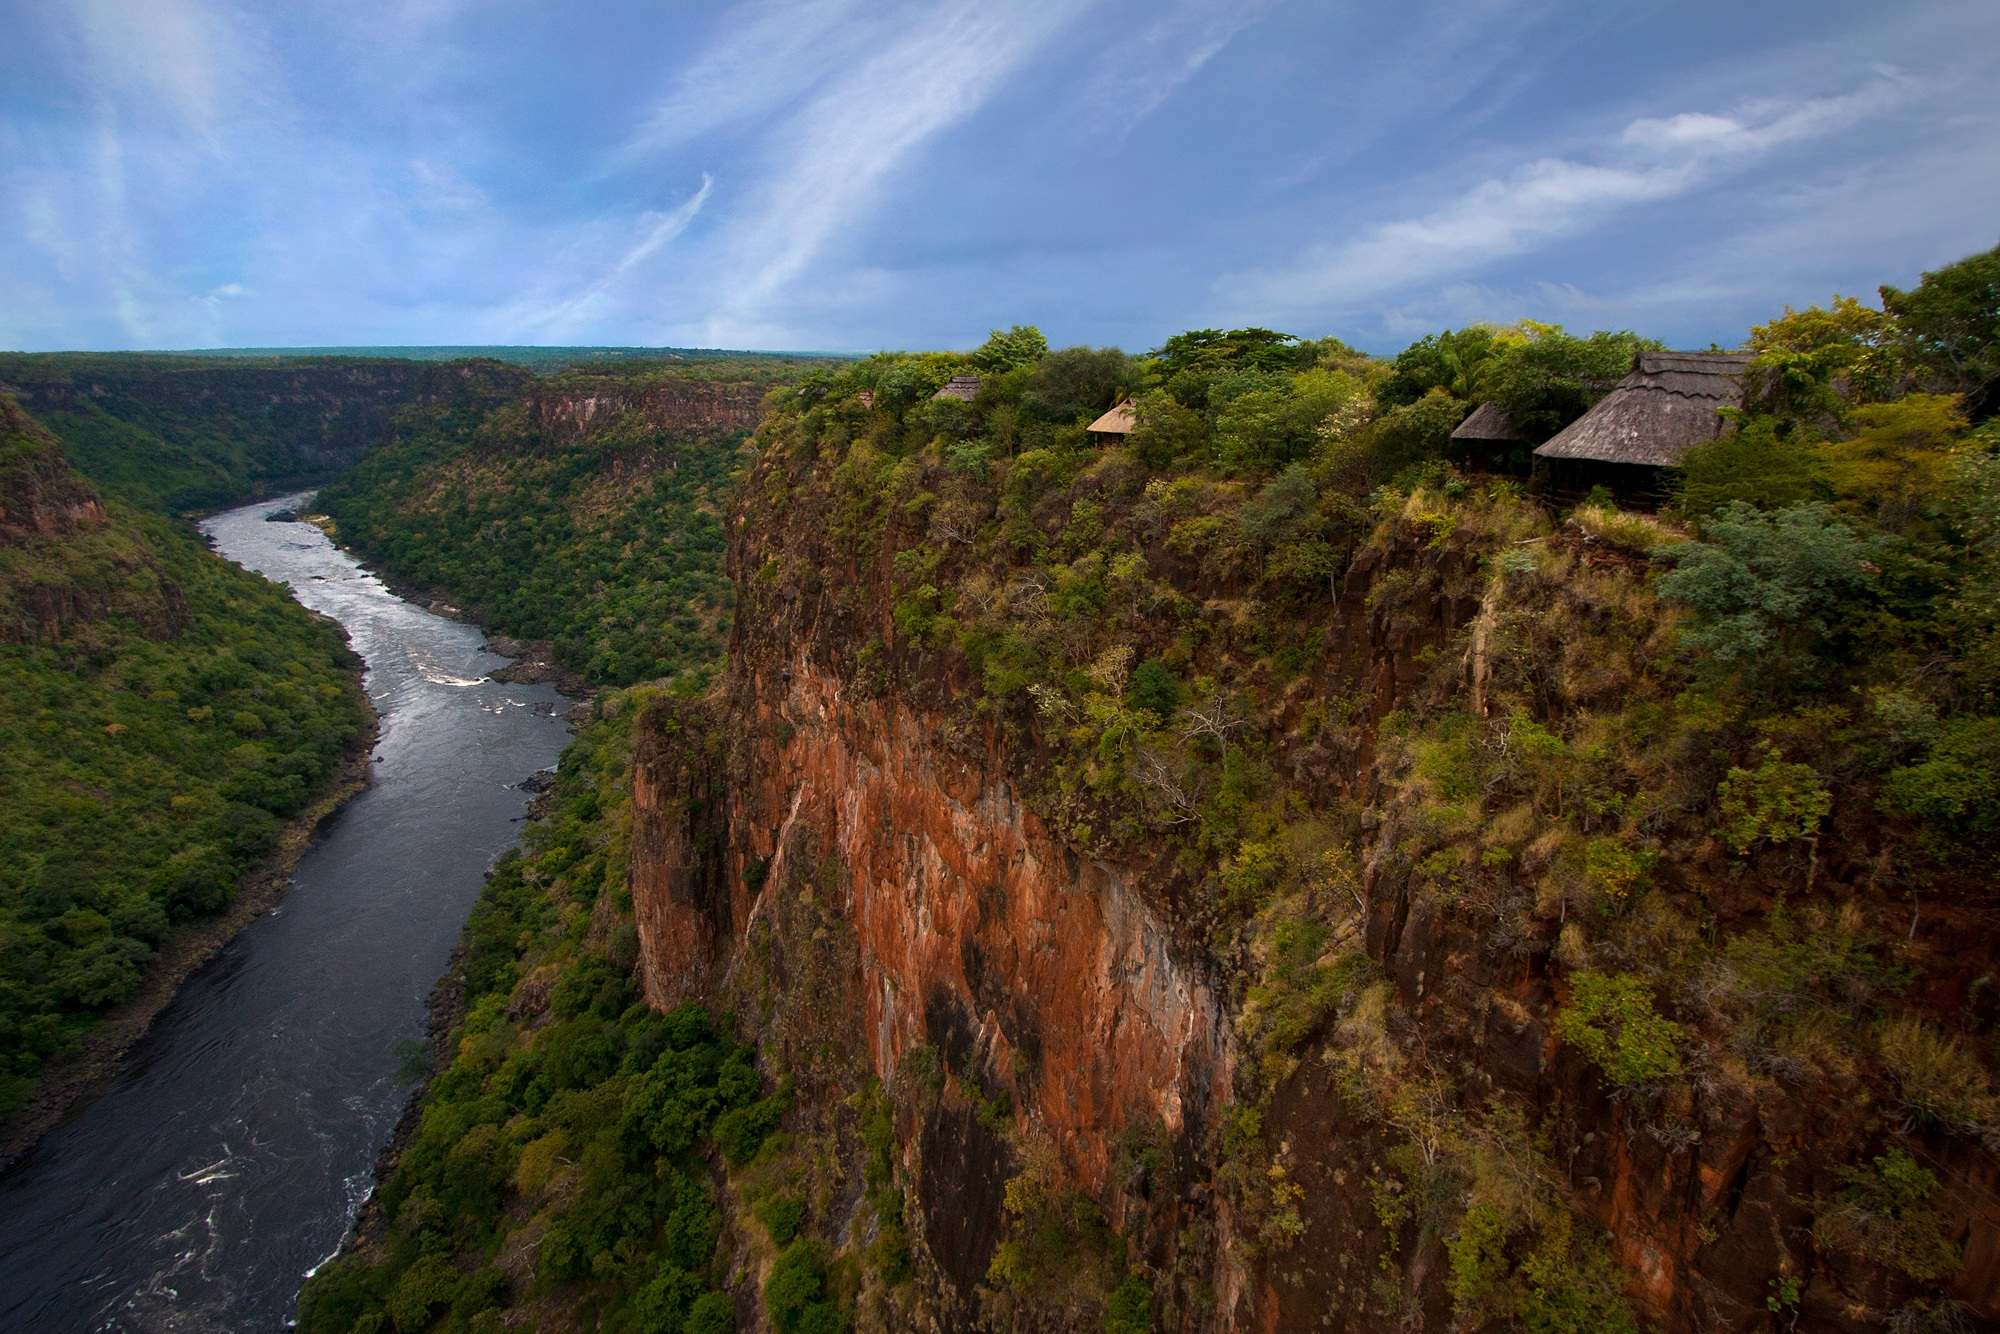 2_-_Gorges_Lodge_is_built_on_the_edge_of_the_Batoka_Gorge.jpg